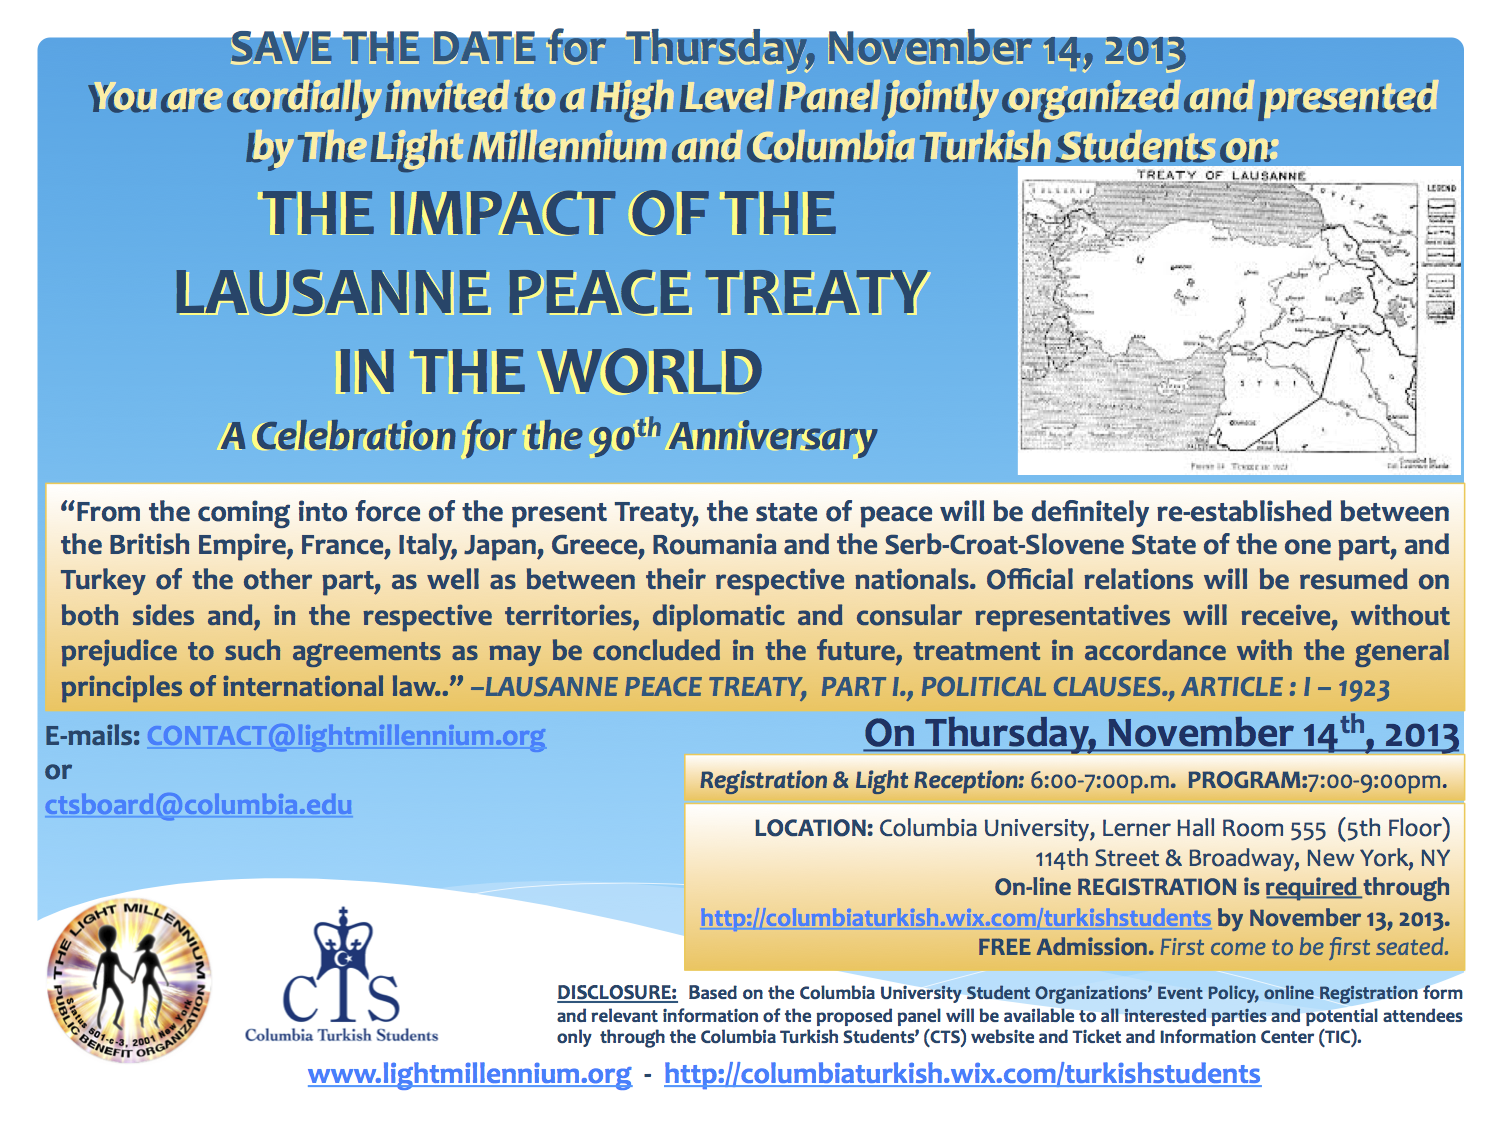 Save the Date - The Impact of the Lausanne Peace Treaty